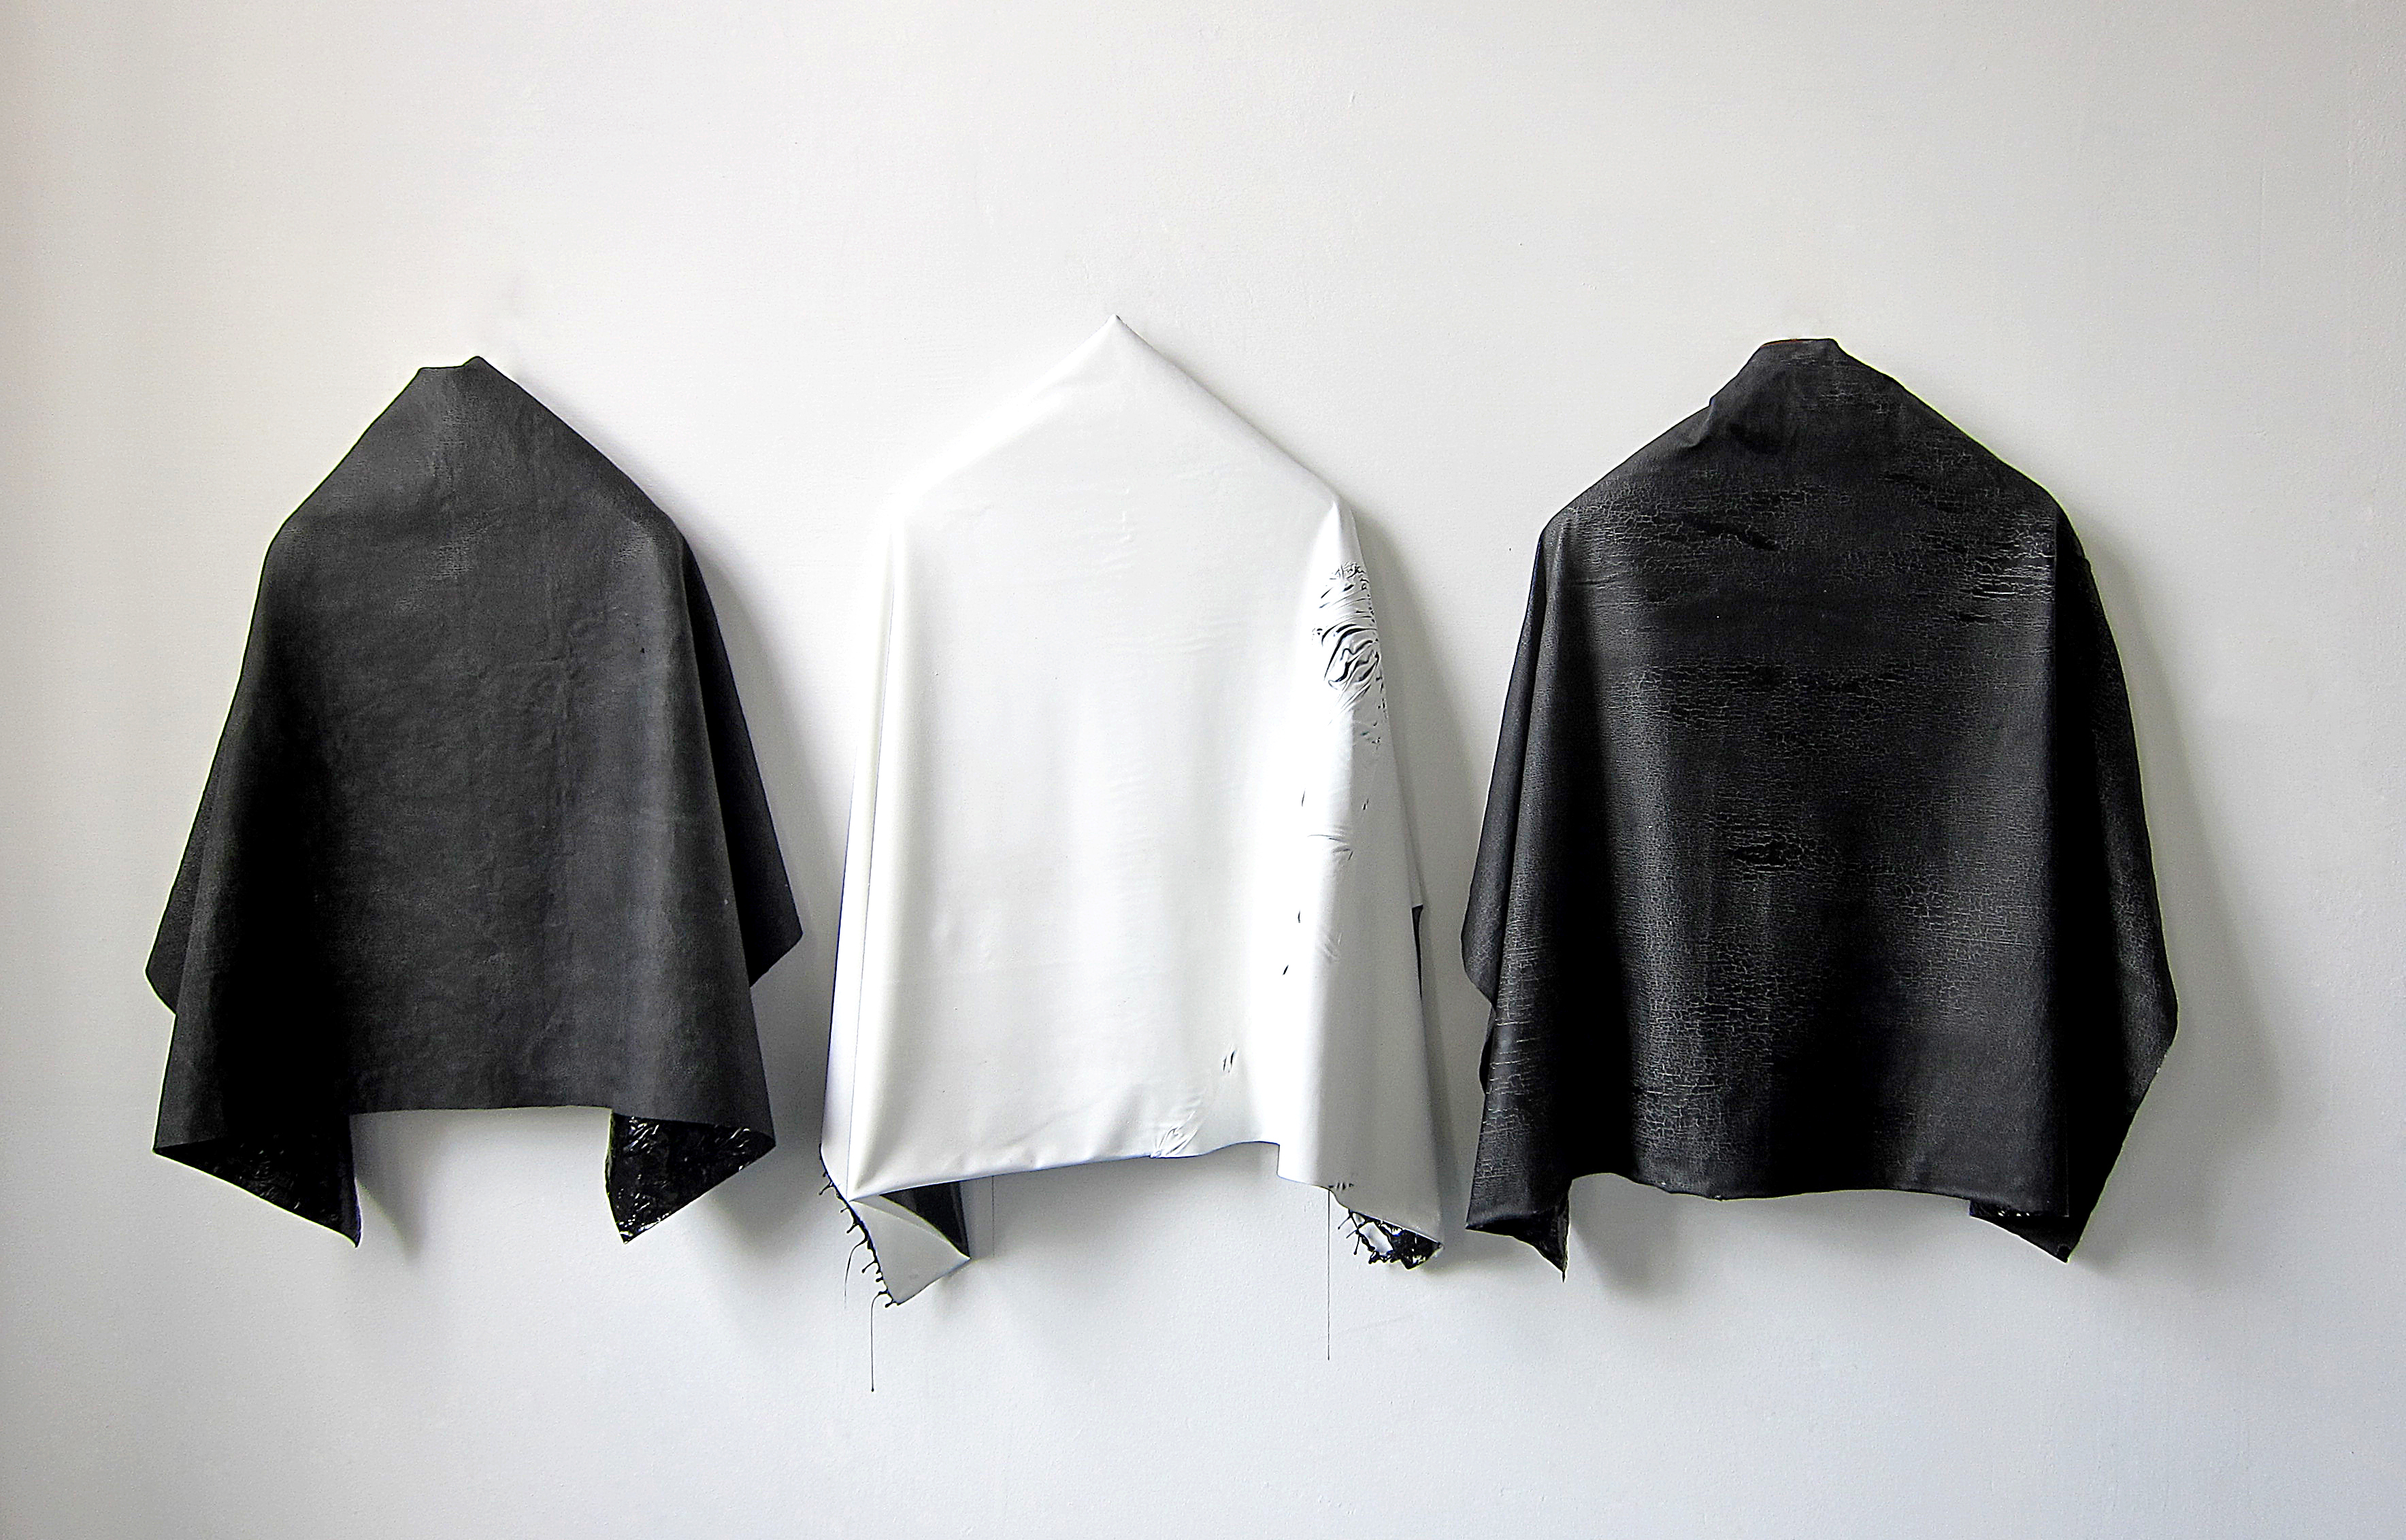 Three Coats, 2014